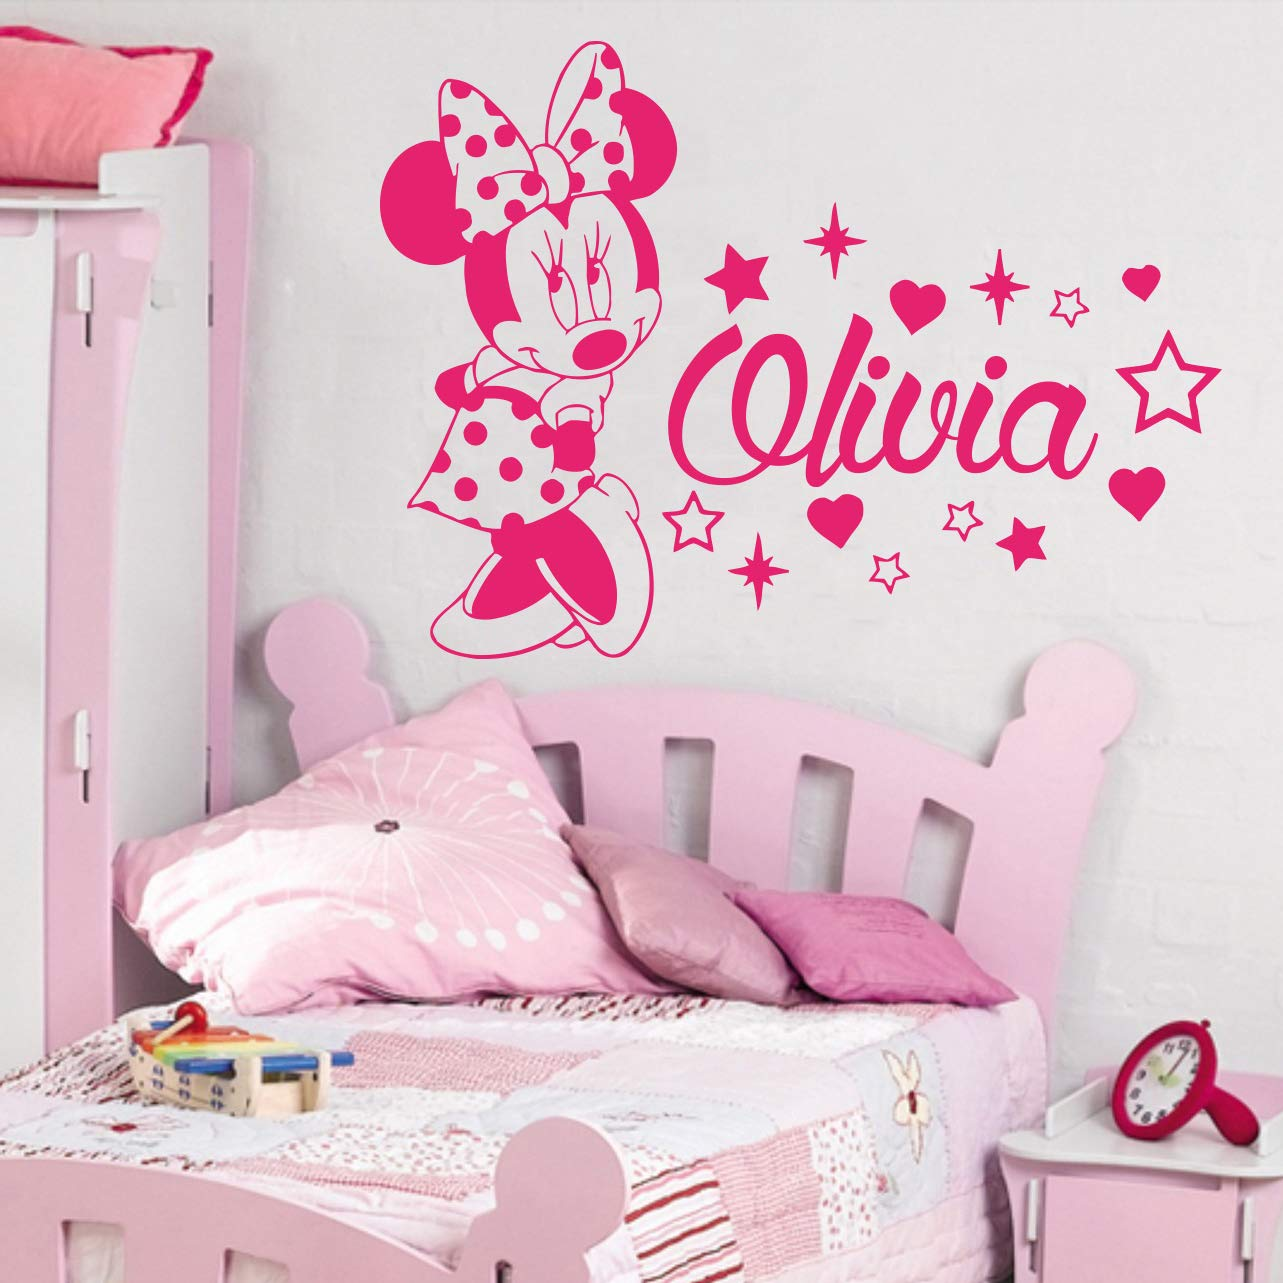 Amazon.com: Minnie Mouse Wall Decal Personalized Name/Baby ...